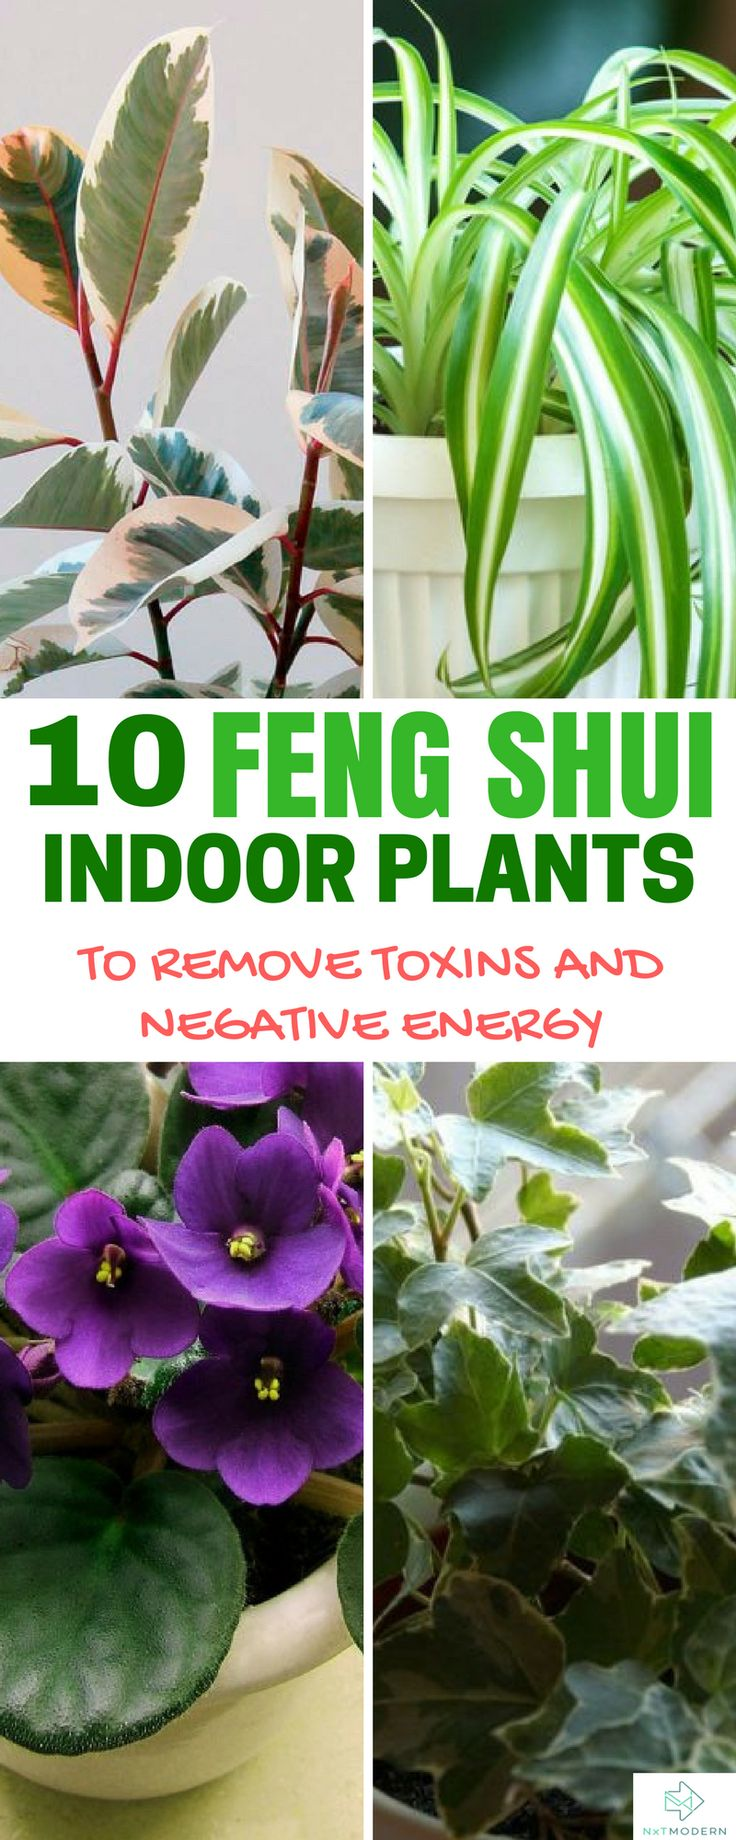 Feng Shui Indoor Plants #fengshui #homedecor #interiors